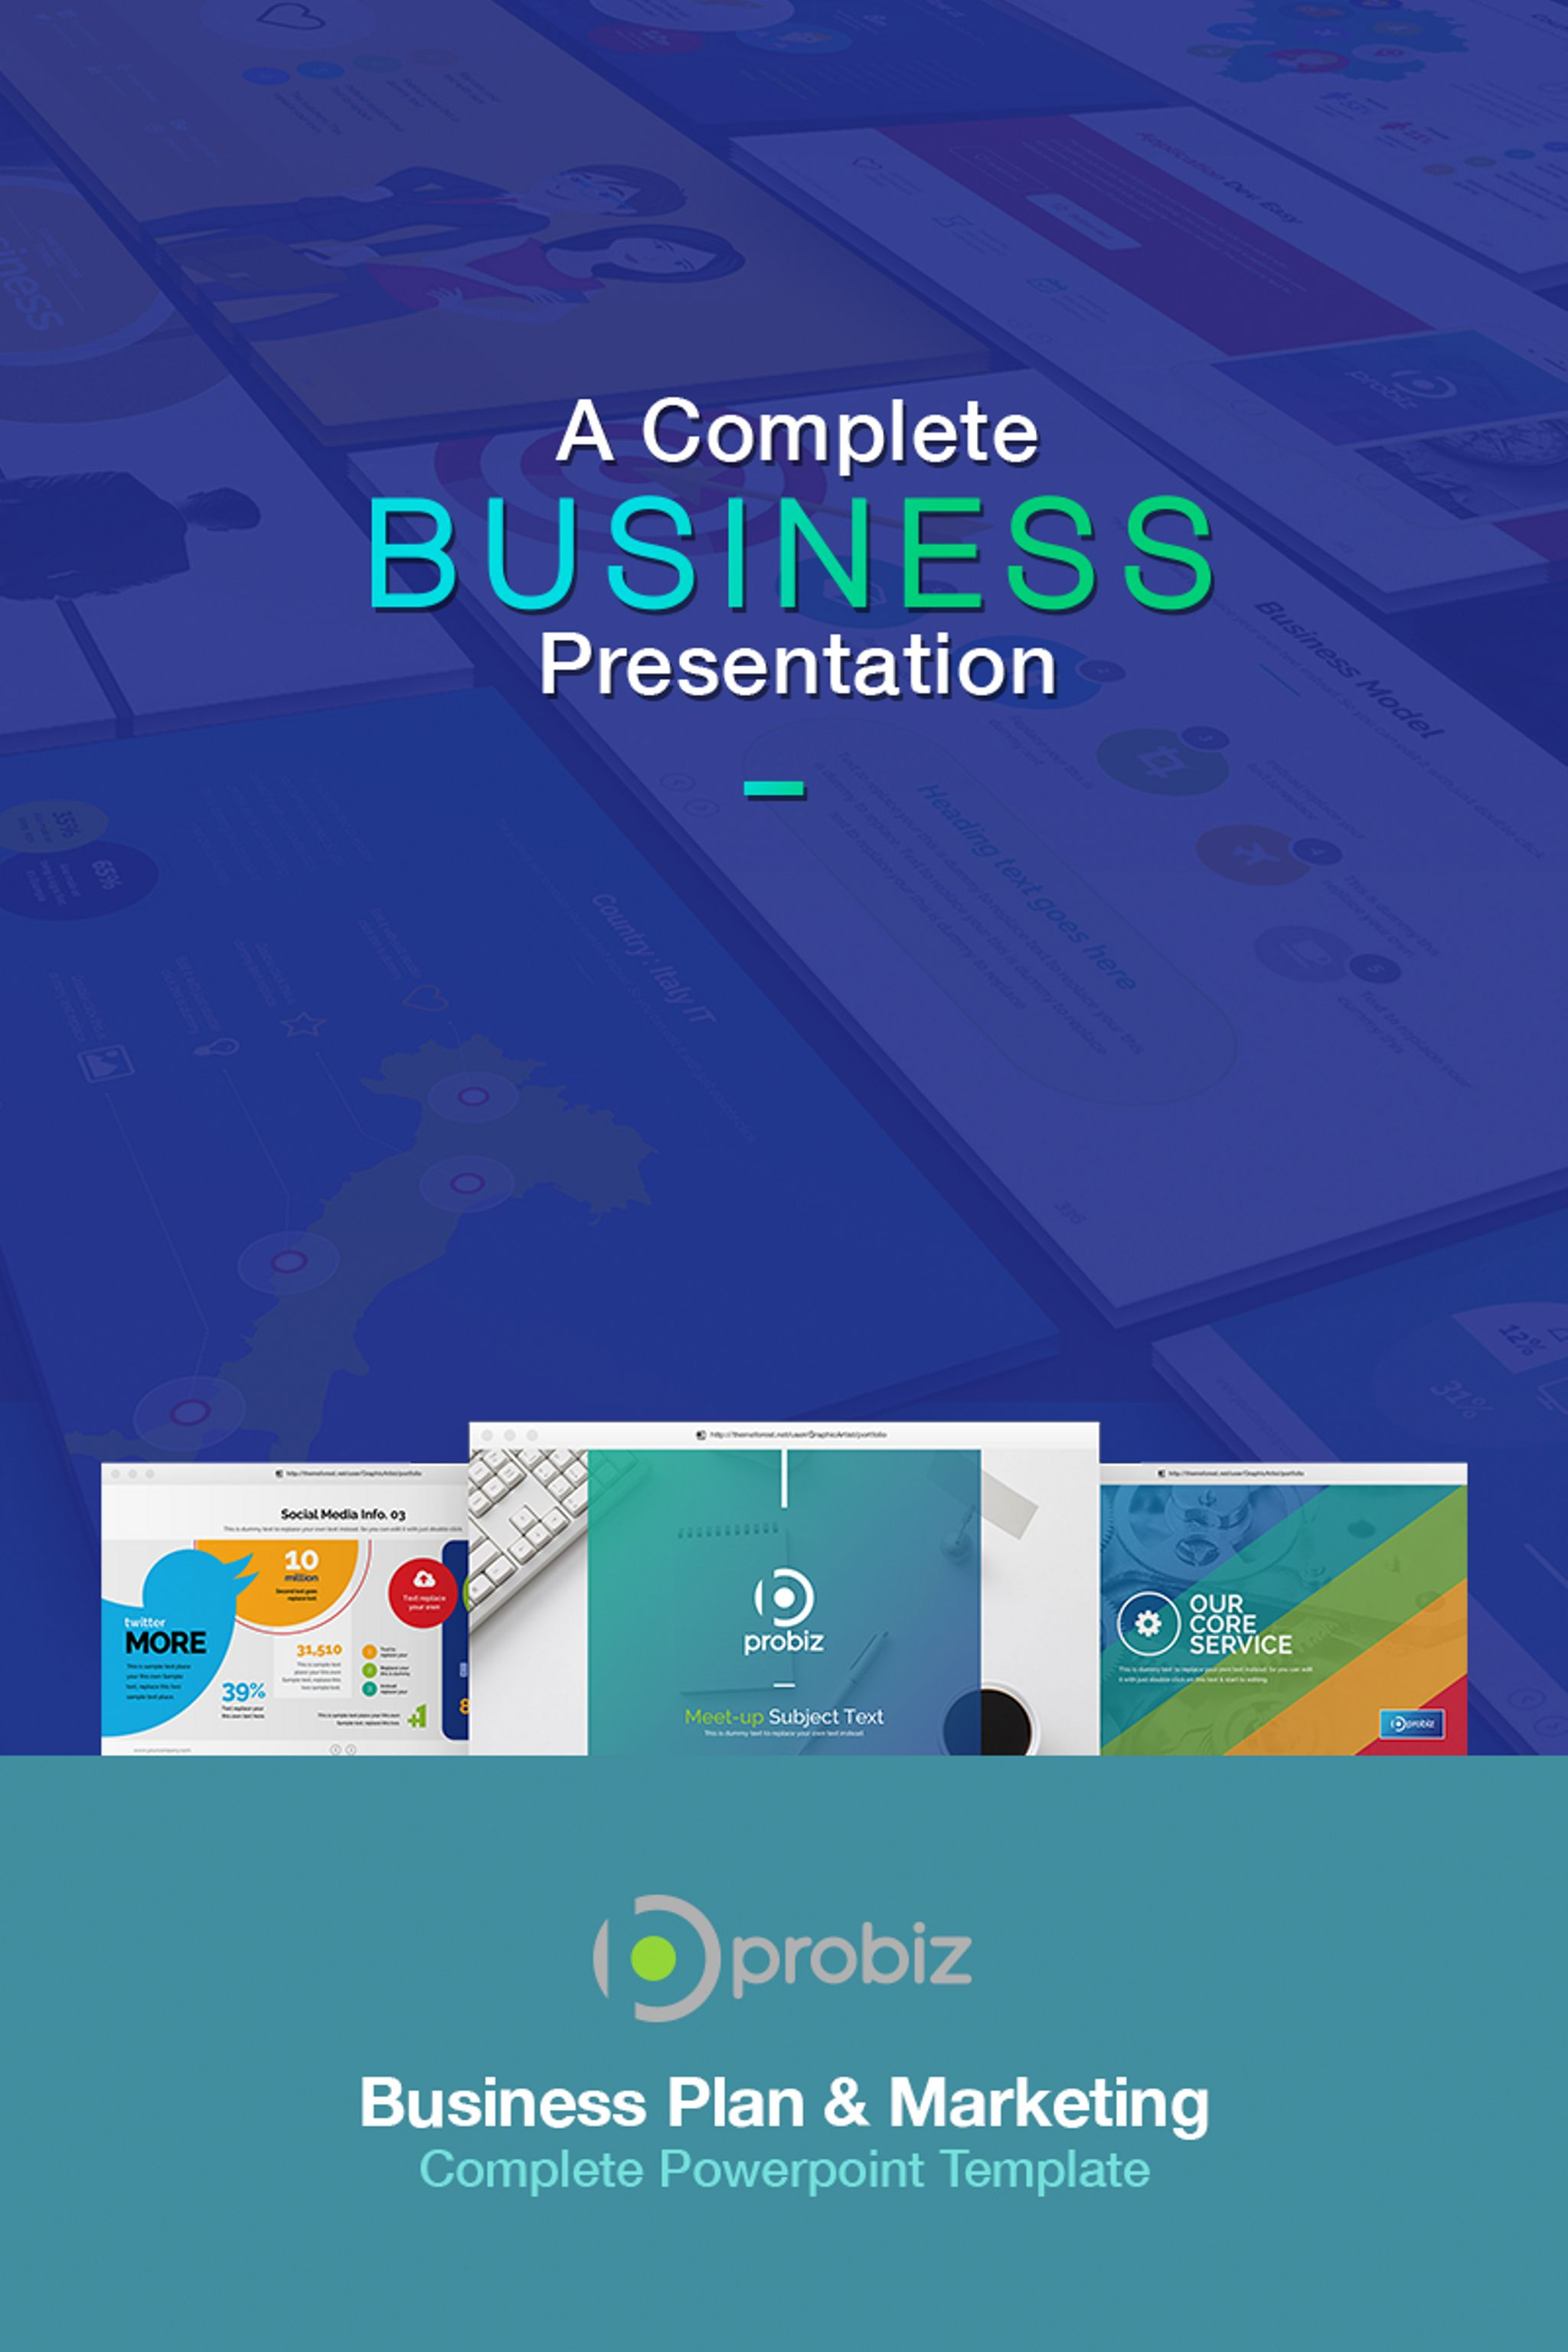 Business plan marketing powerpoint template 67022 zoom in toneelgroepblik